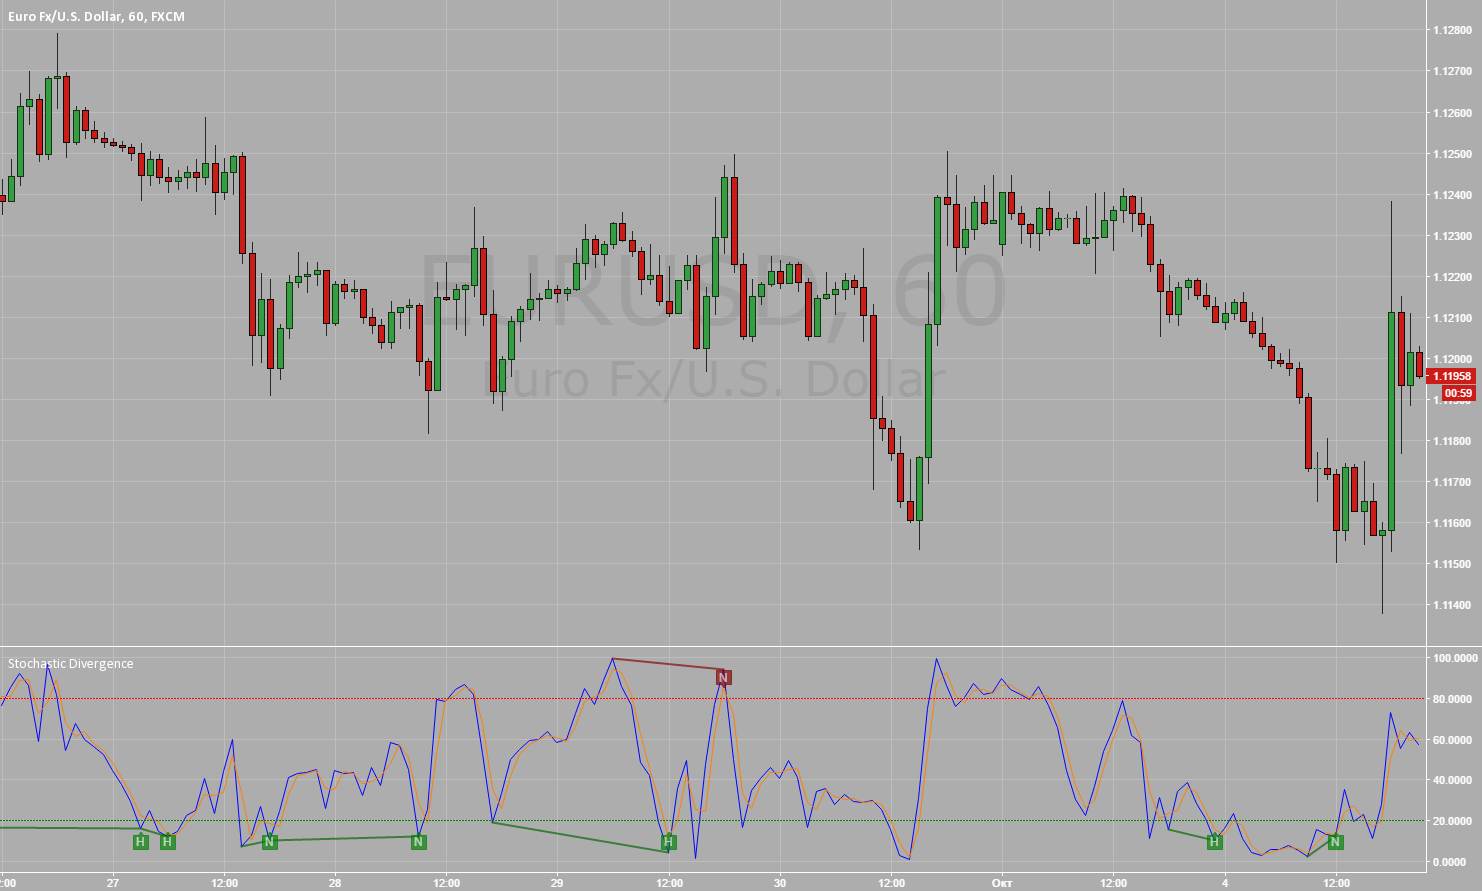 Stochastic Divergence